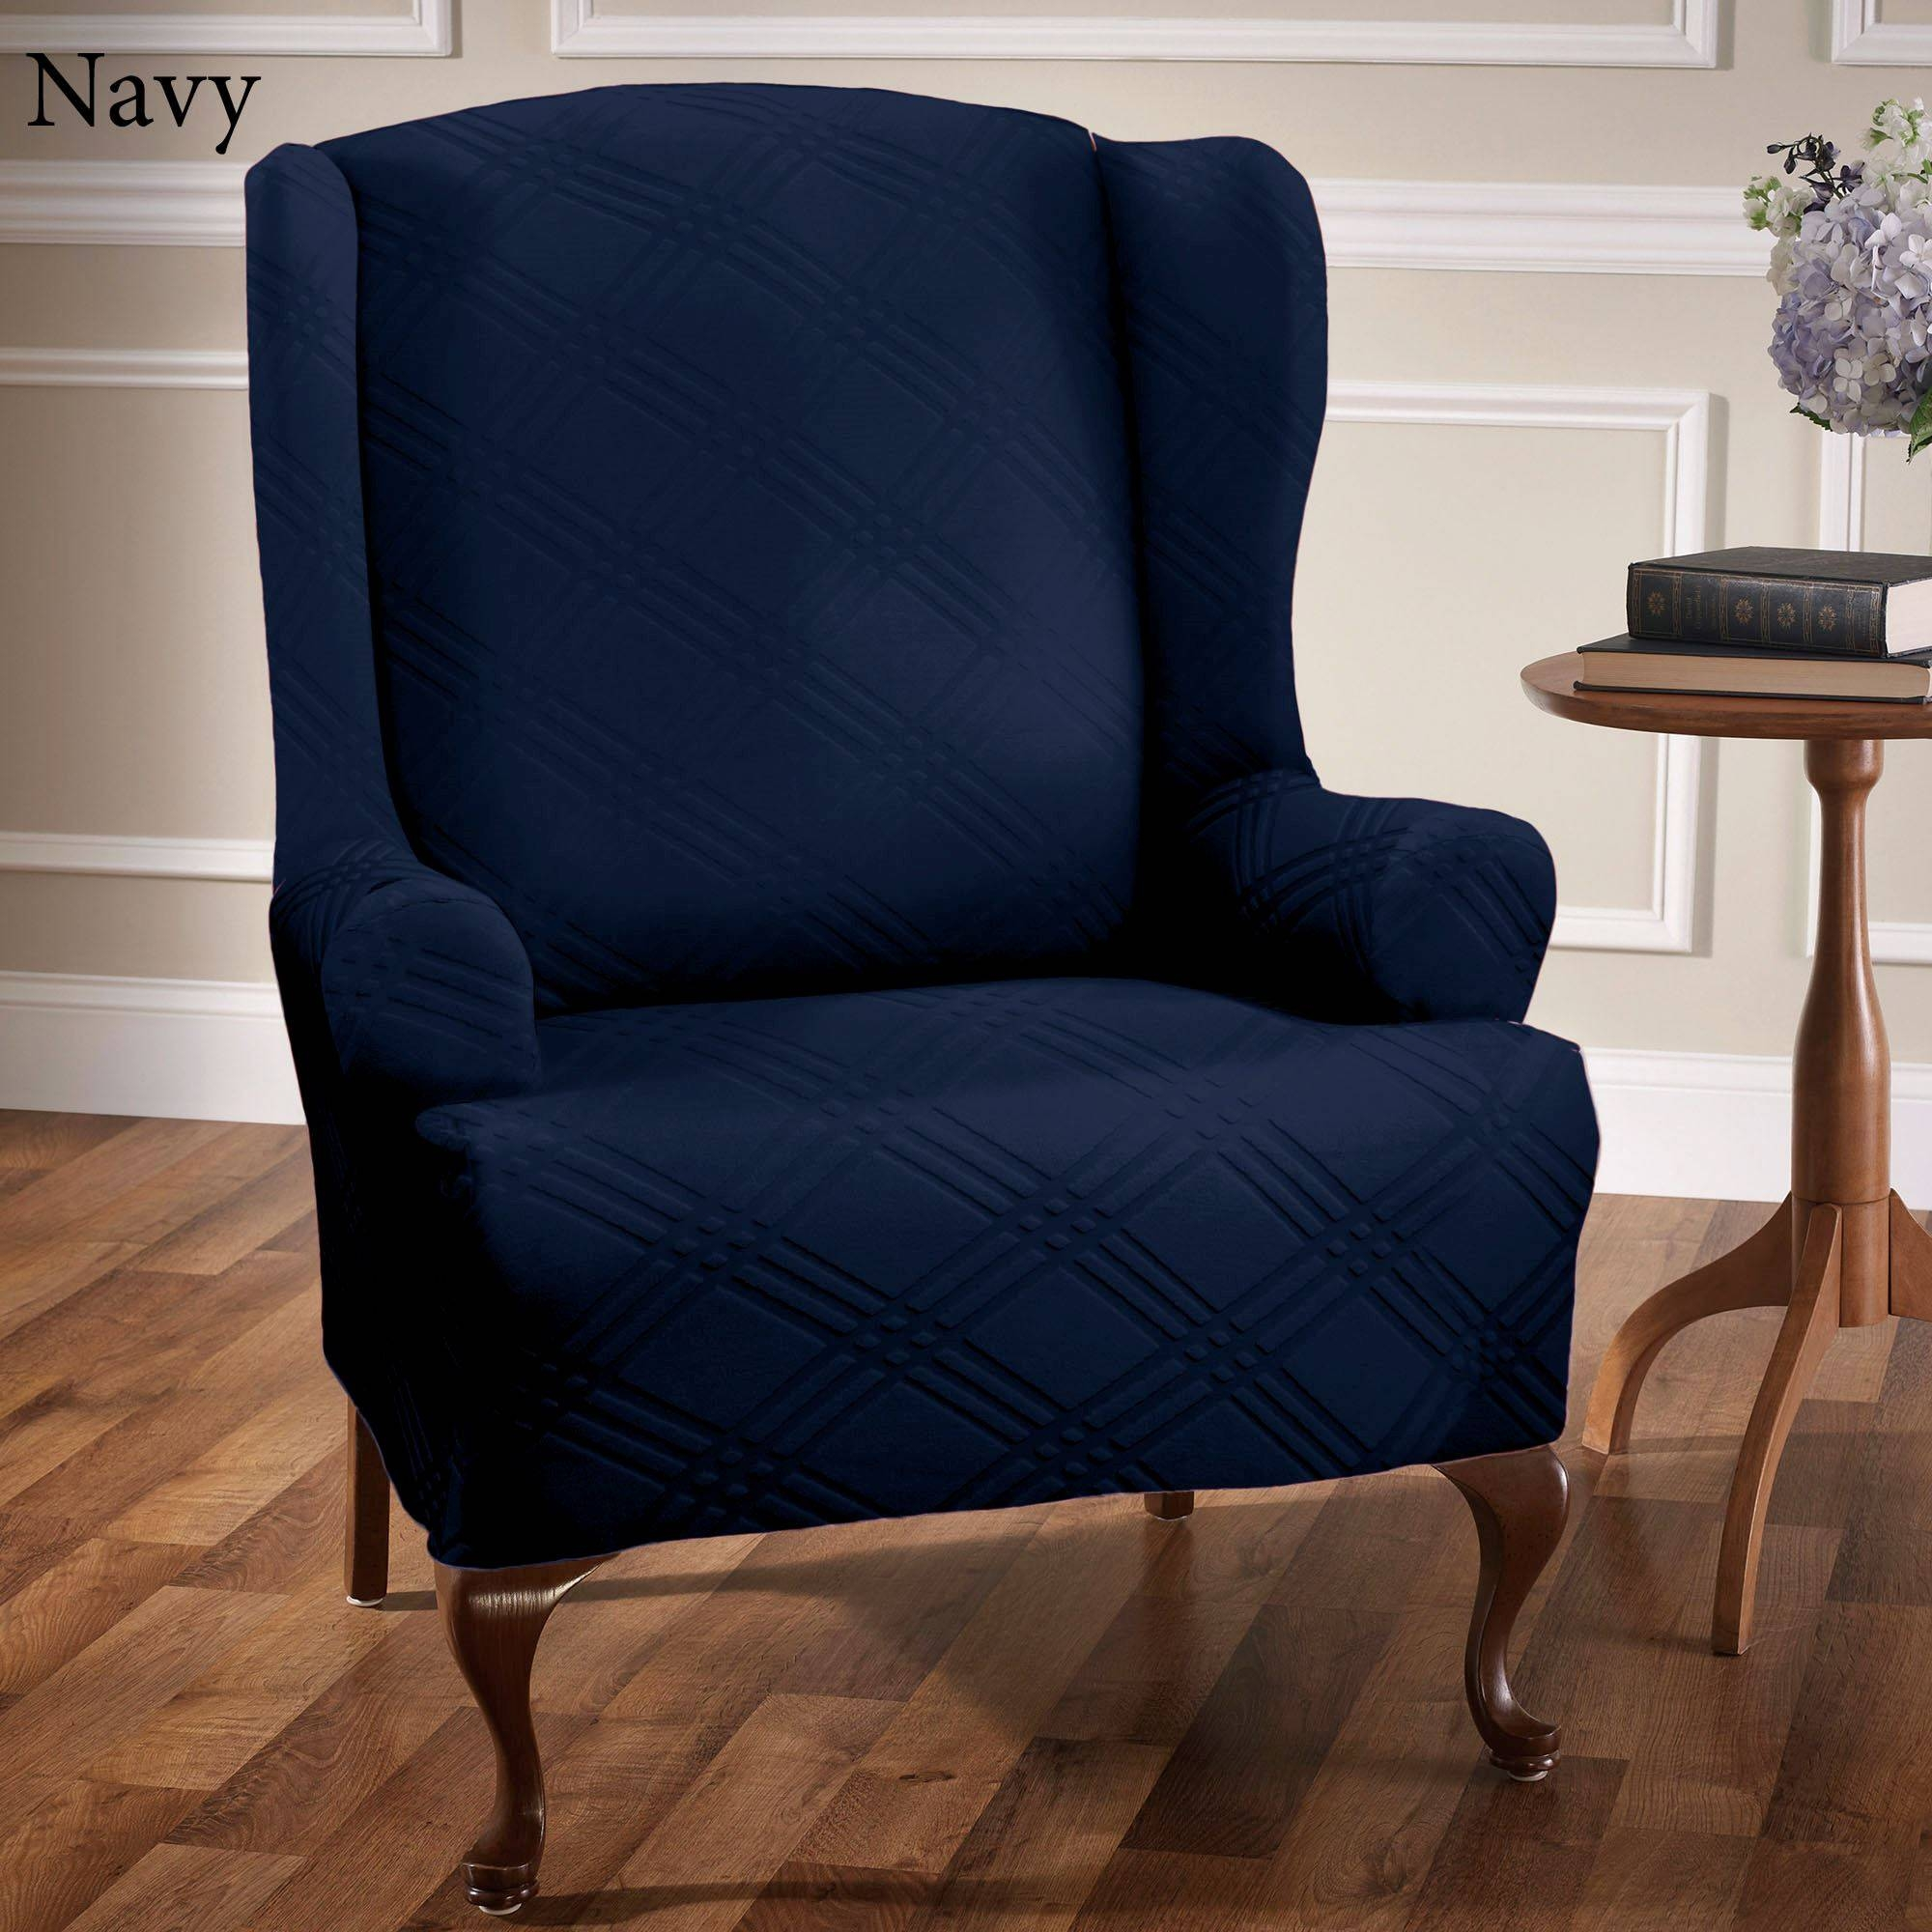 Double Diamond Stretch Wing Chair Slipcovers throughout Navy Blue Slipcovers (Image 5 of 15)